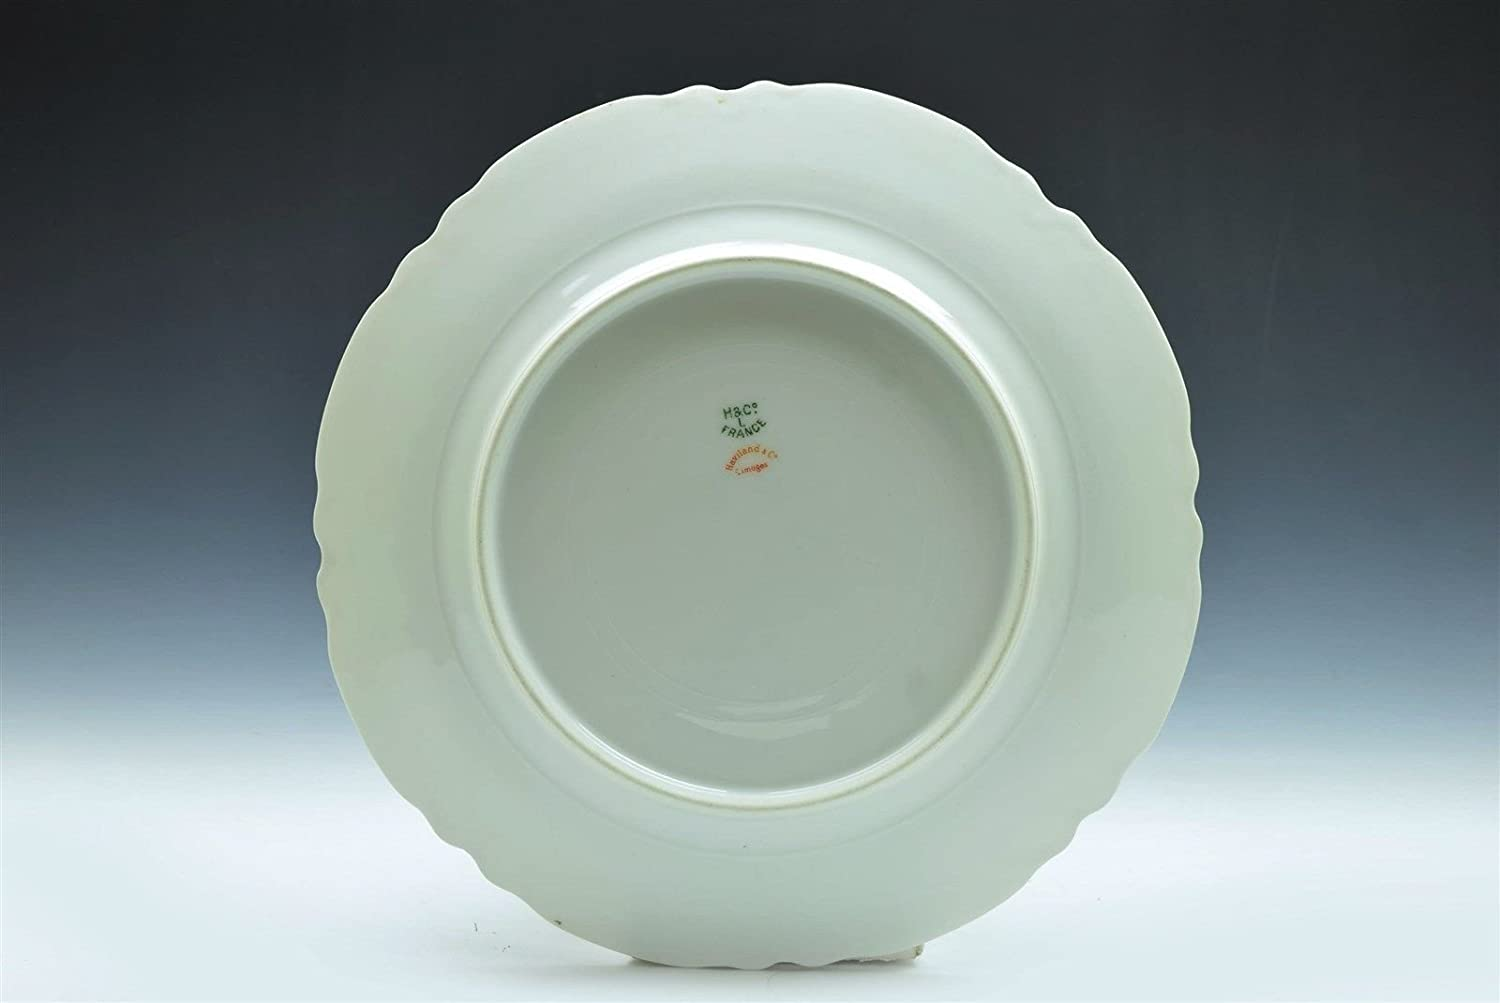 Limoges China Patterns Gold Trim Magnificent Design Inspiration